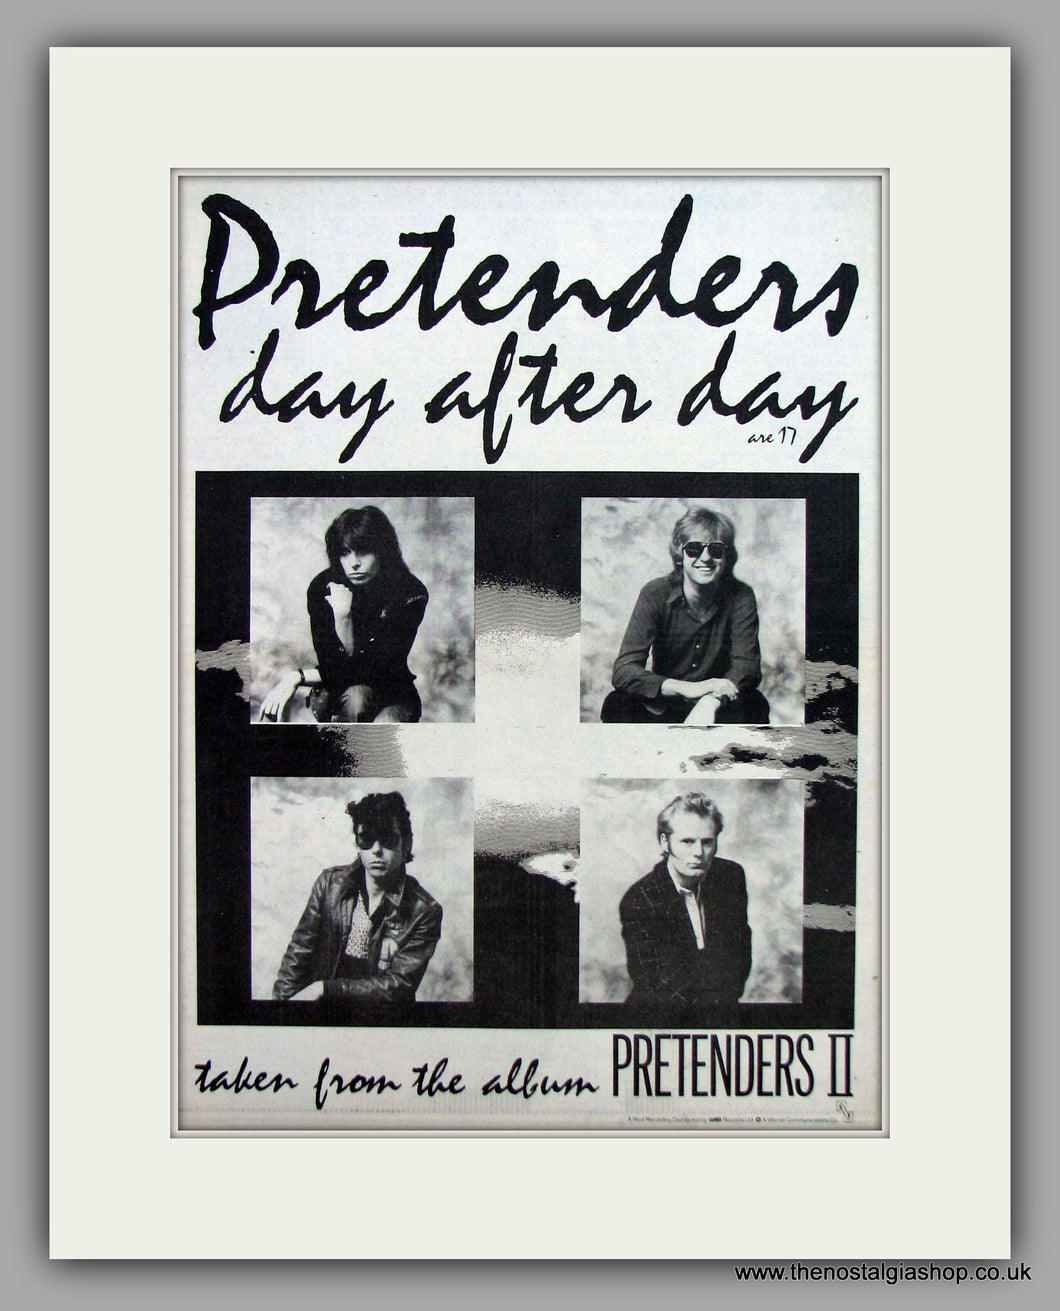 Pretenders(The) - Day after Day.  Original Vintage Advert 1981 (ref AD10528)